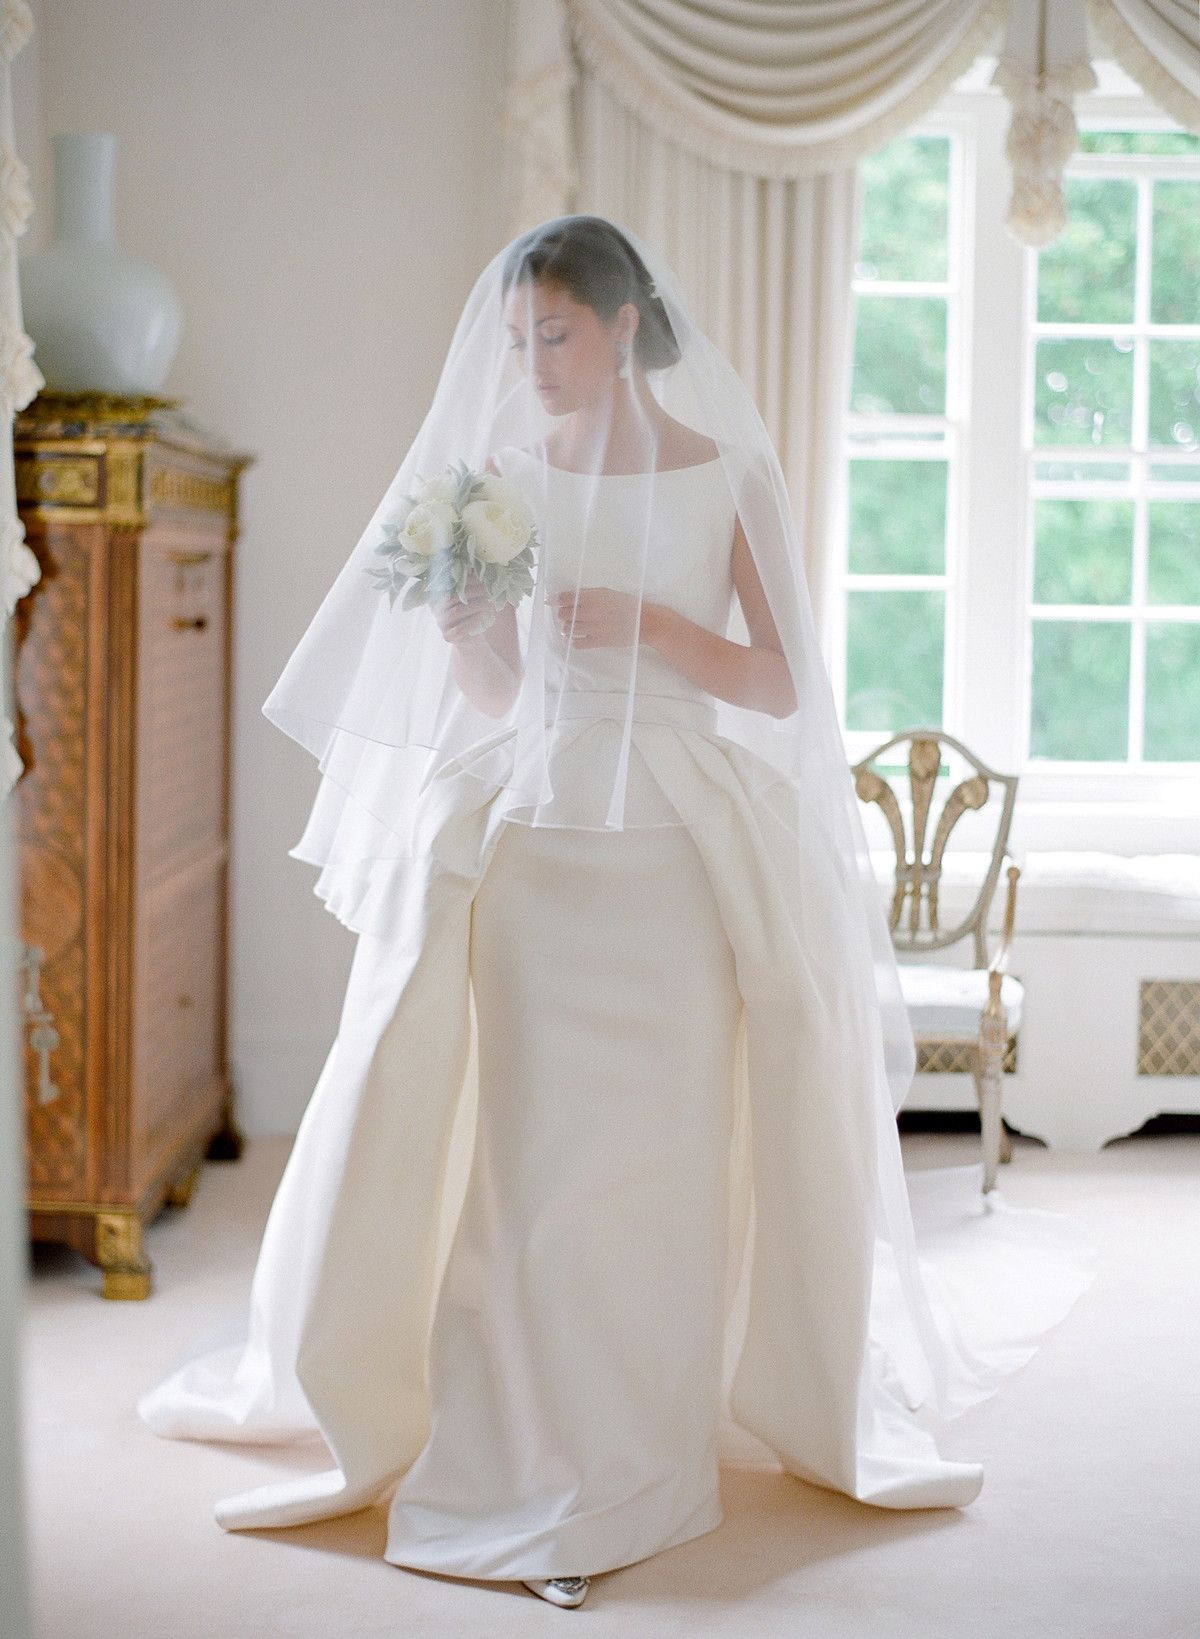 2019 Very Simple Wedding Dresses Wedding Dresses For Guests Check More At Http Svesty Com Ve Wedding Dresses Sheath Wedding Dress Beautiful Wedding Dresses [ 1472 x 736 Pixel ]